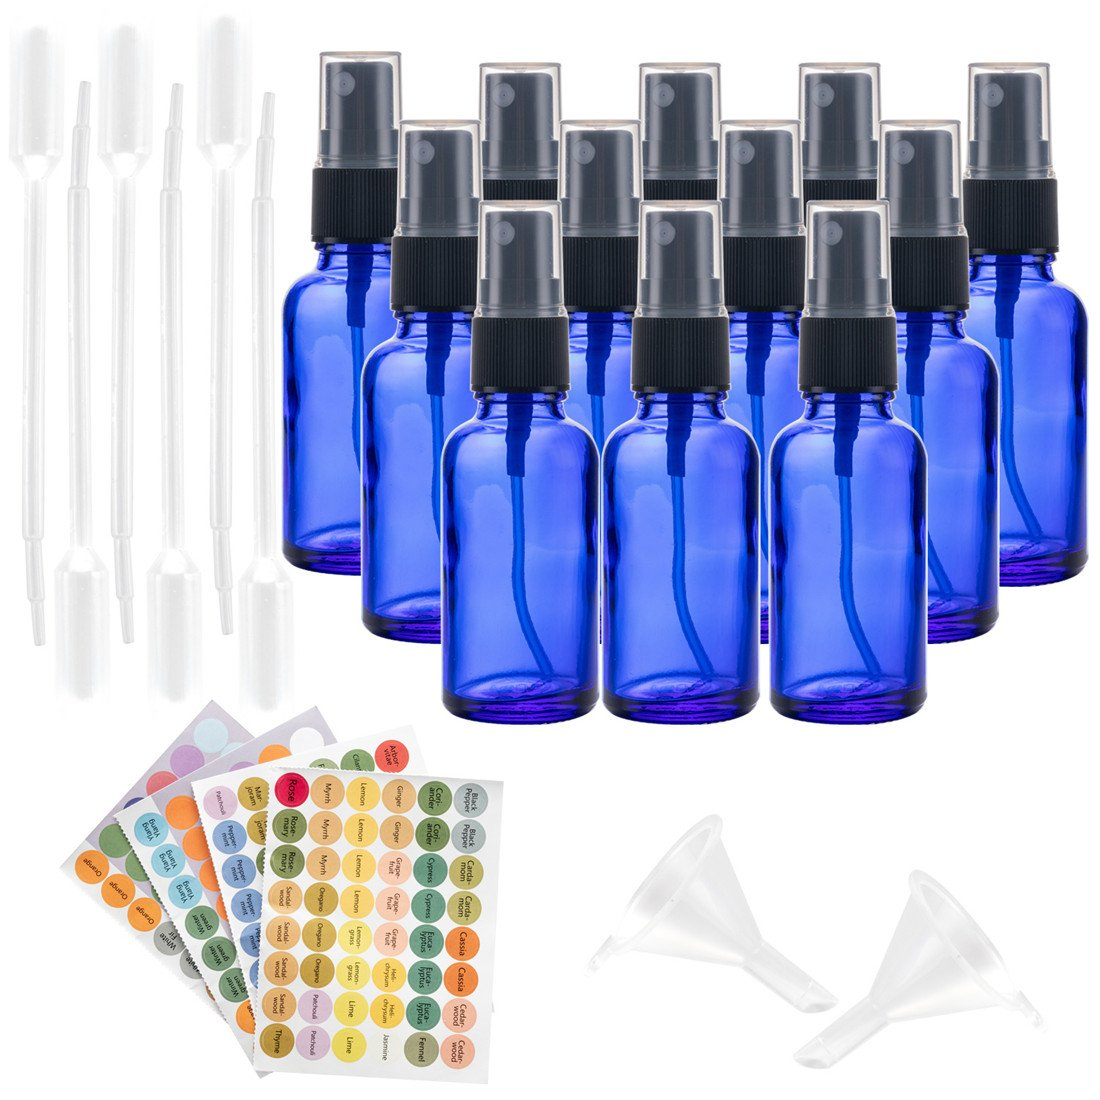 12Pcs Blue Glass Spray Bottles, Blue Essential Oil Bottles for Cleaning Products, Perfume, Homemade Cleaners and Aromatherapy with 6 Droppers, 2 Funnels, 1 Sheet Label Stickers